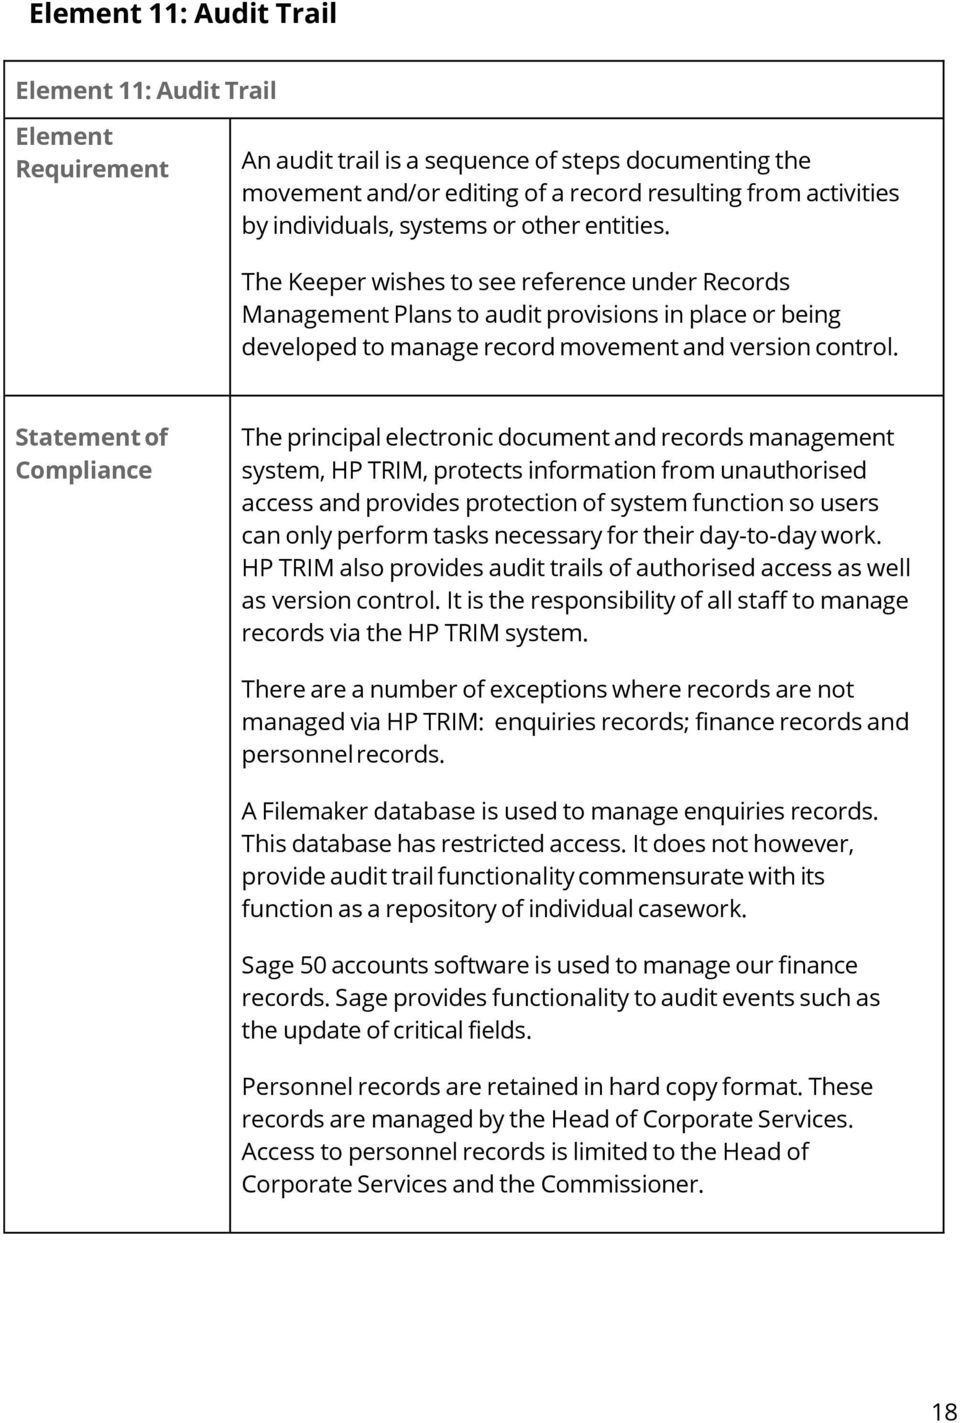 Statement of Compliance The principal electronic document and records management system, HP TRIM, protects information from unauthorised access and provides protection of system function so users can